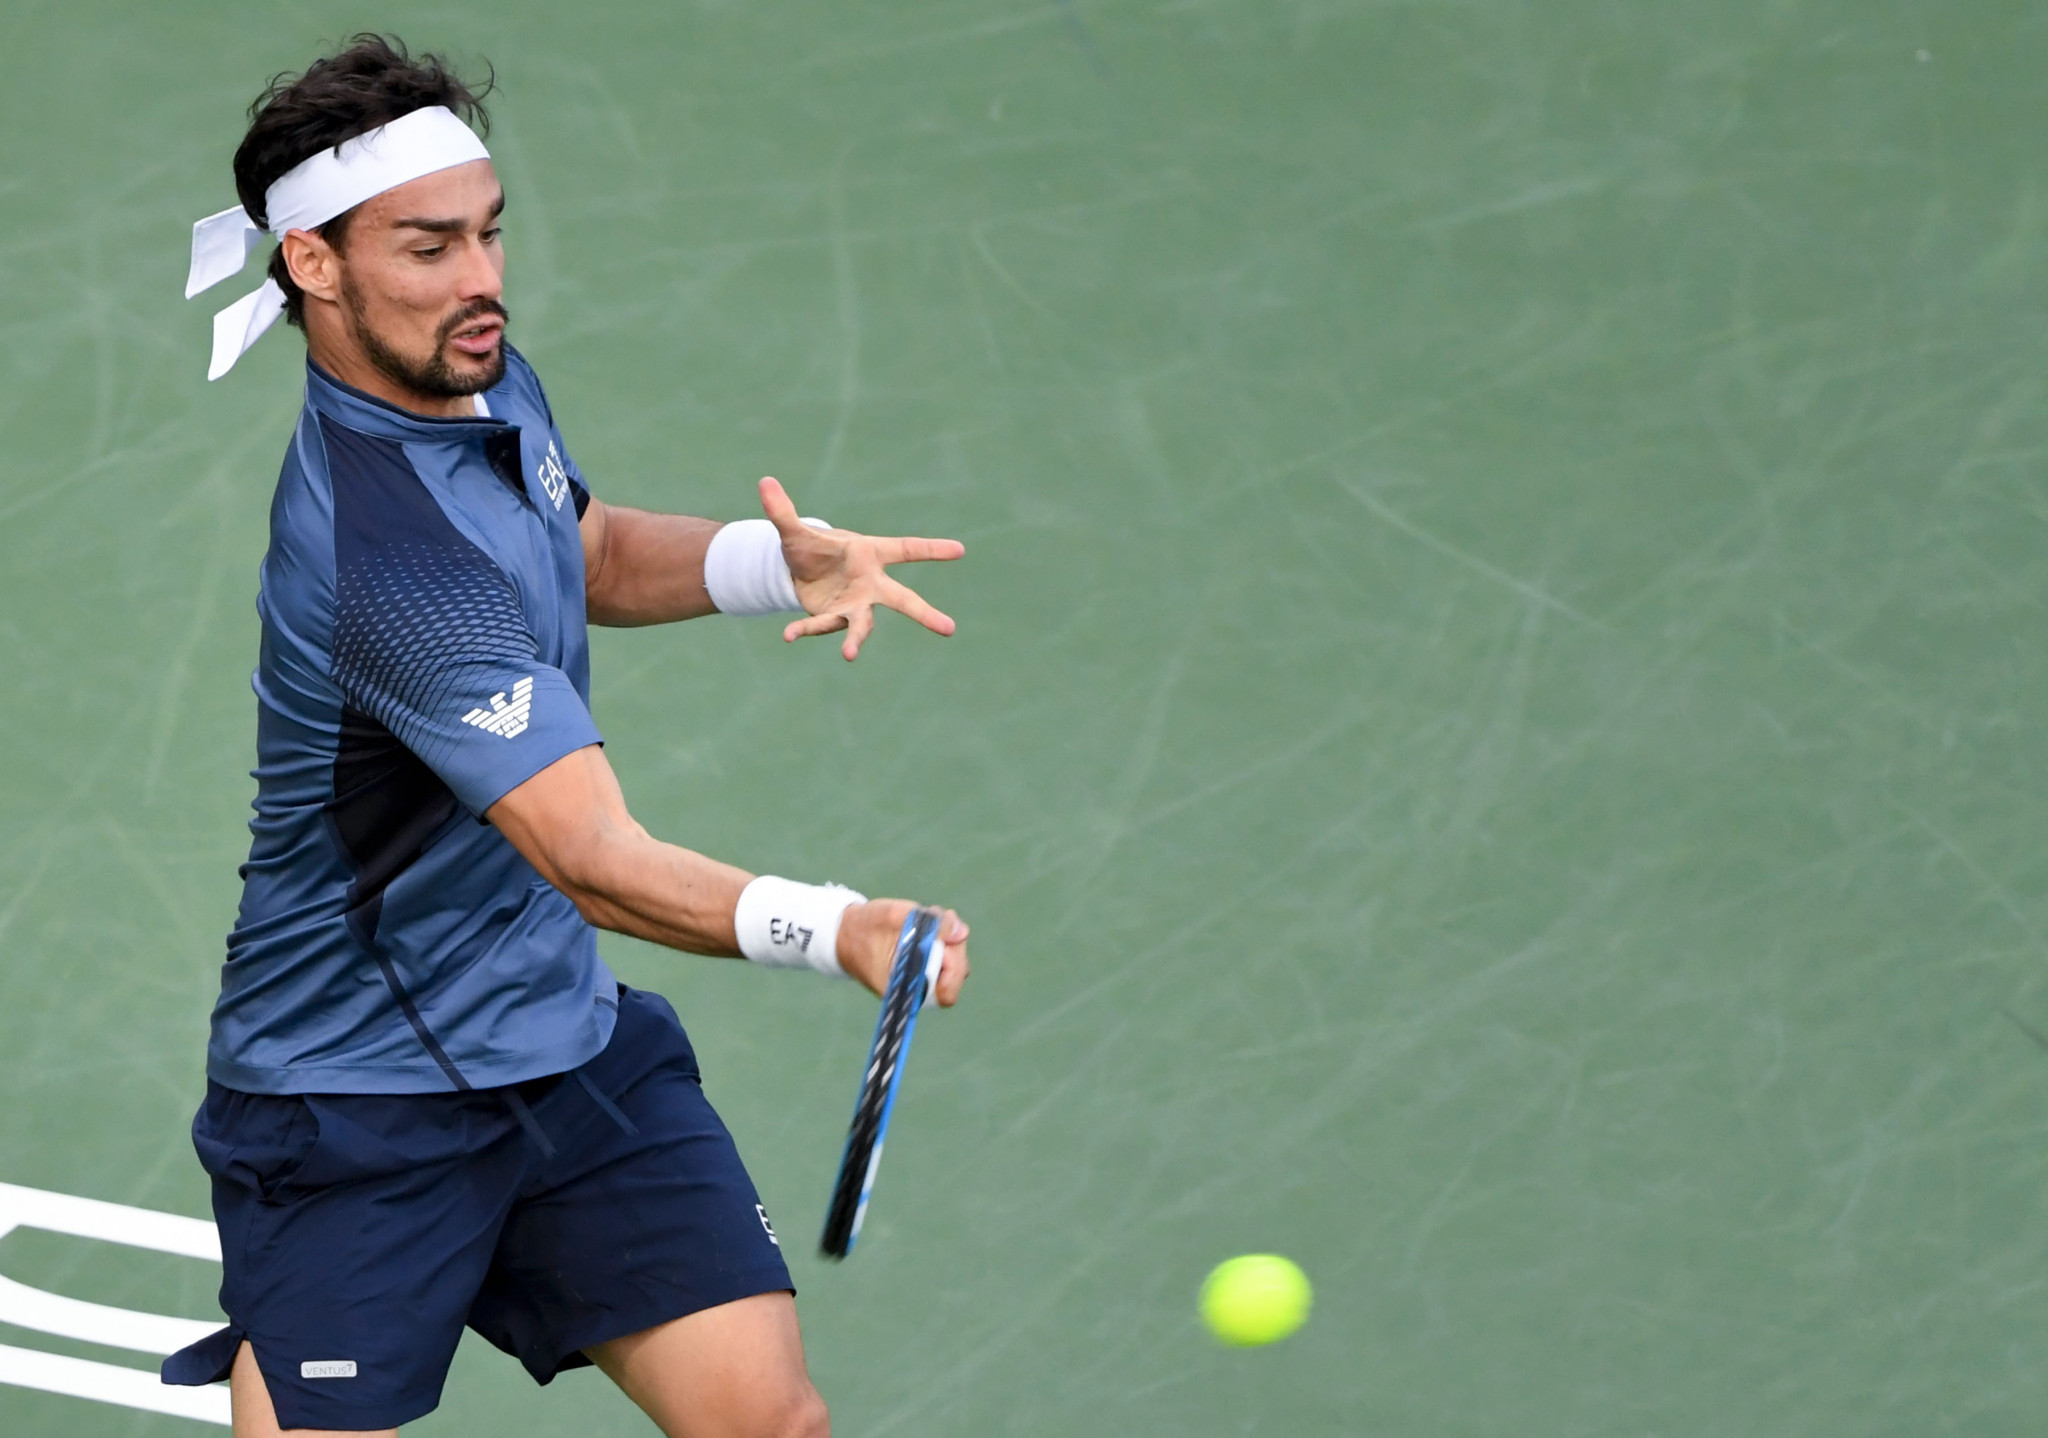 Tennis star Fognini would have skipped Tokyo 2020 this year and considers not returning to Asia